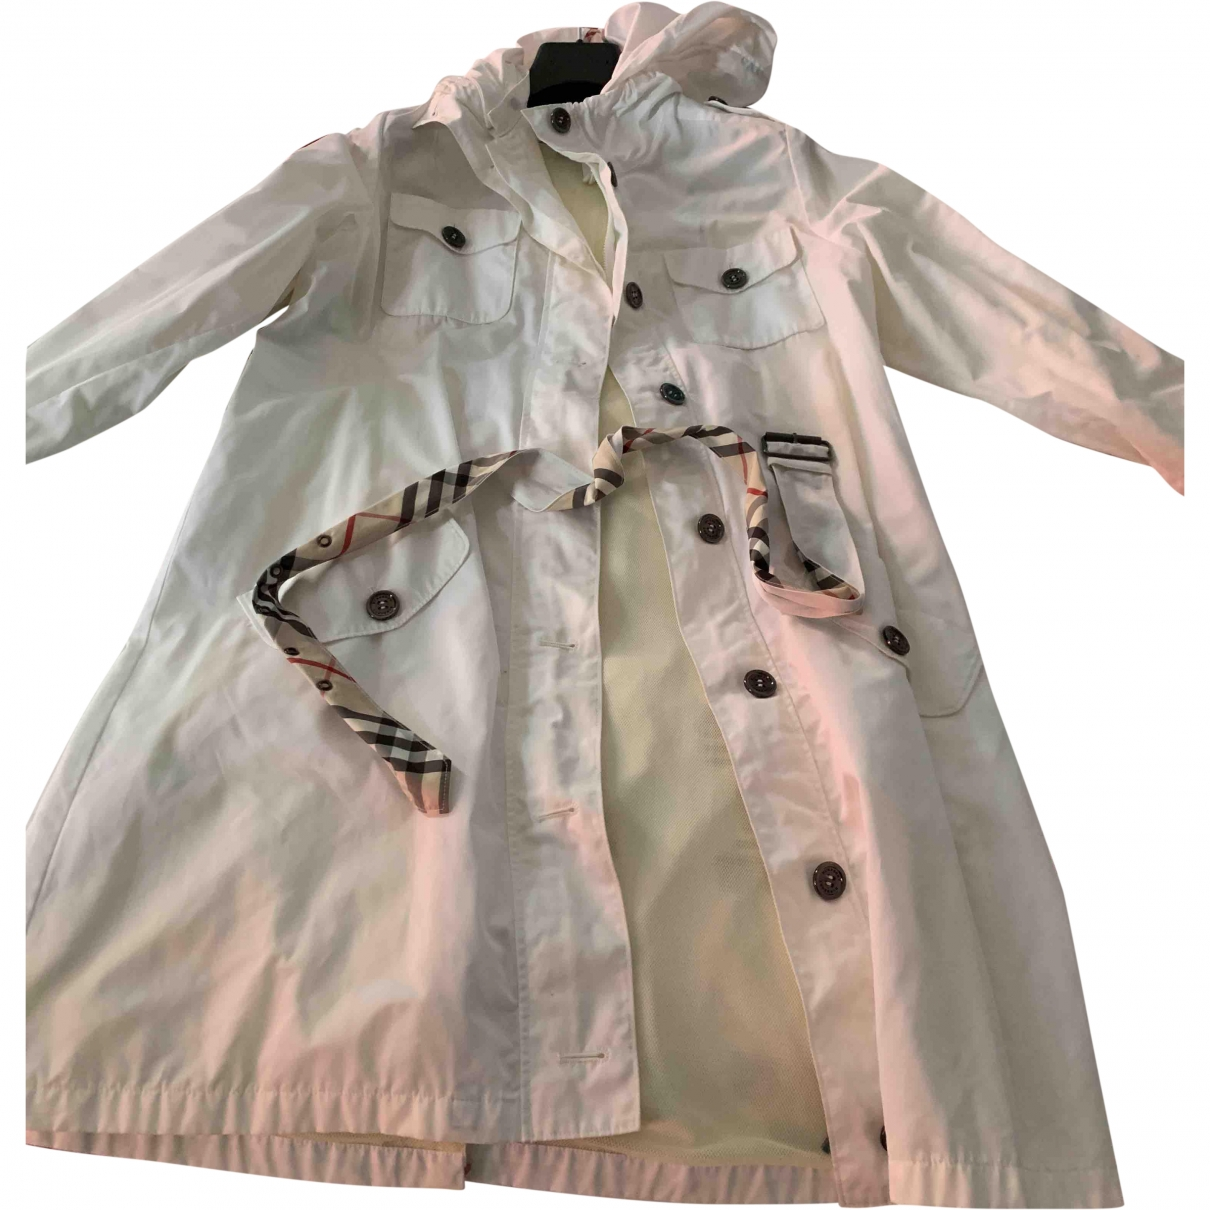 Burberry \N White jacket & coat for Kids 14 years - S FR